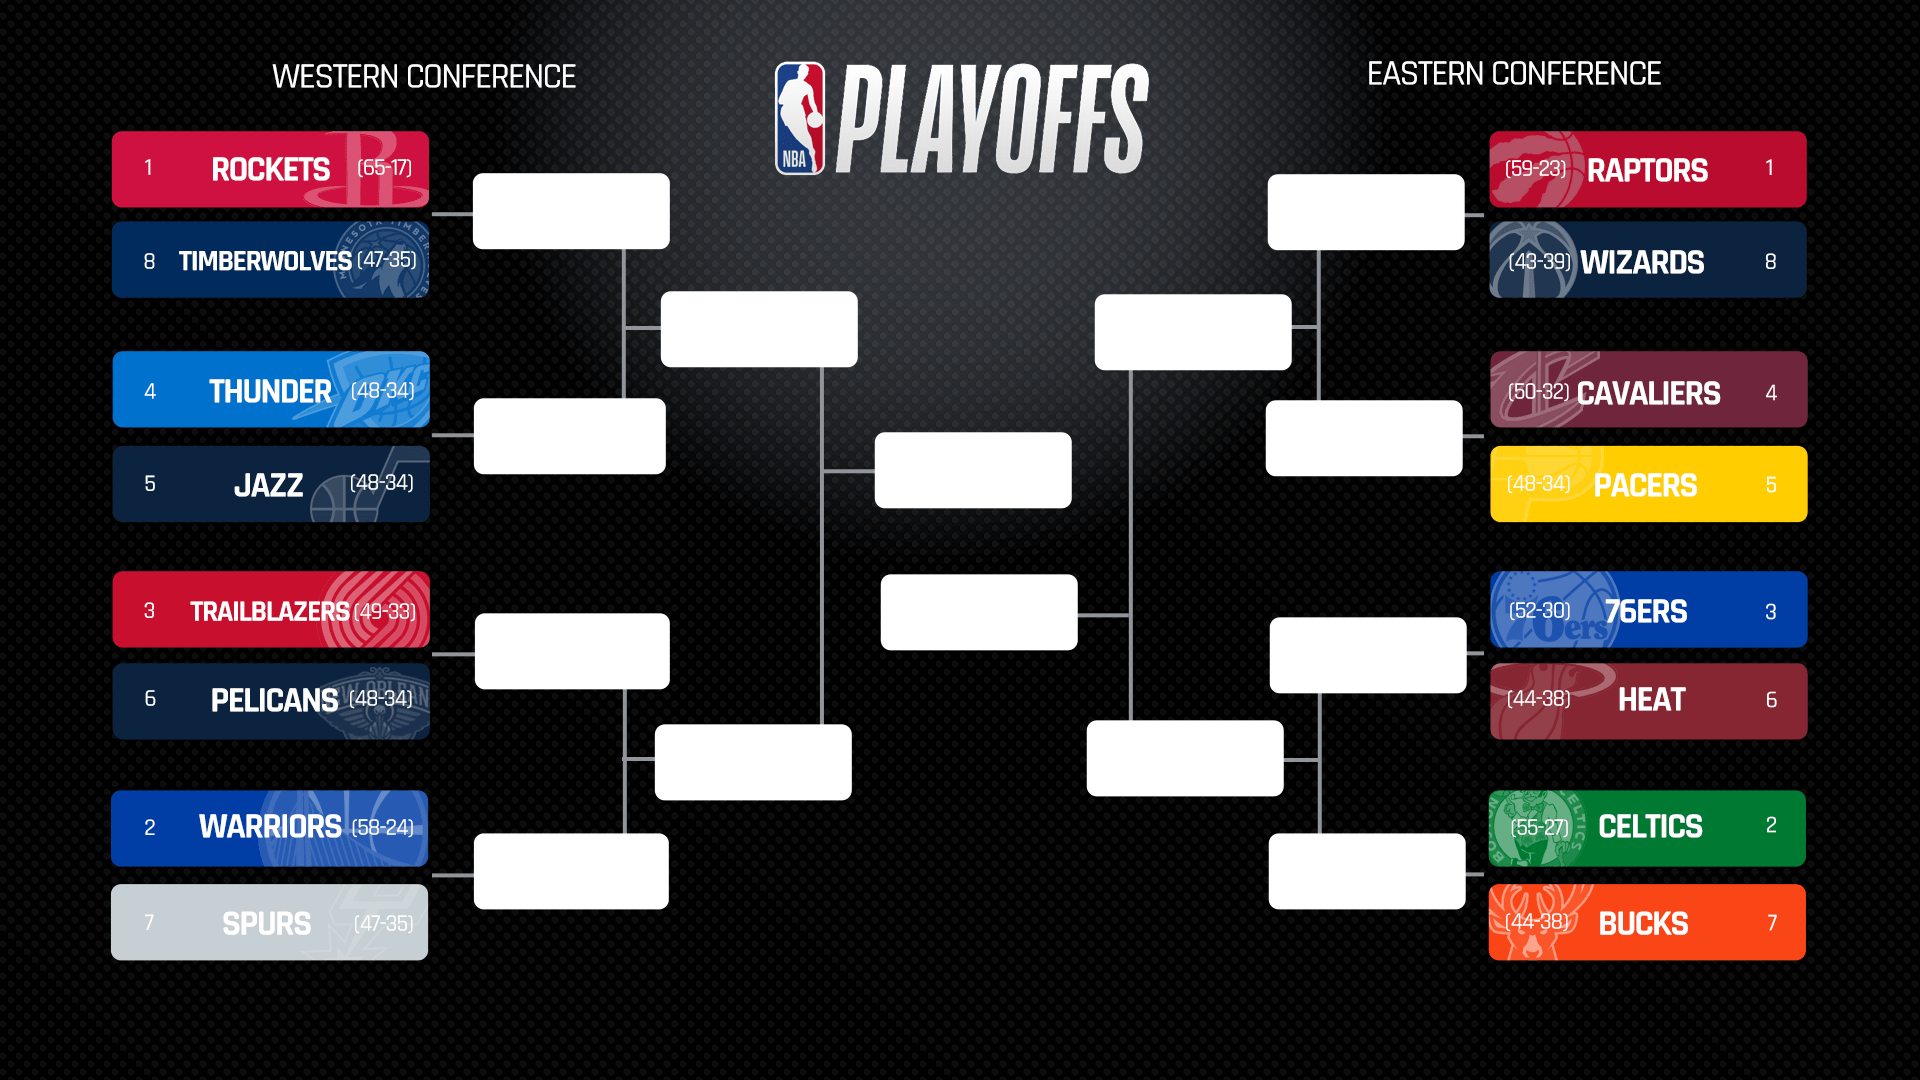 NBA playoffs 2018: Full bracket predictions, picks from